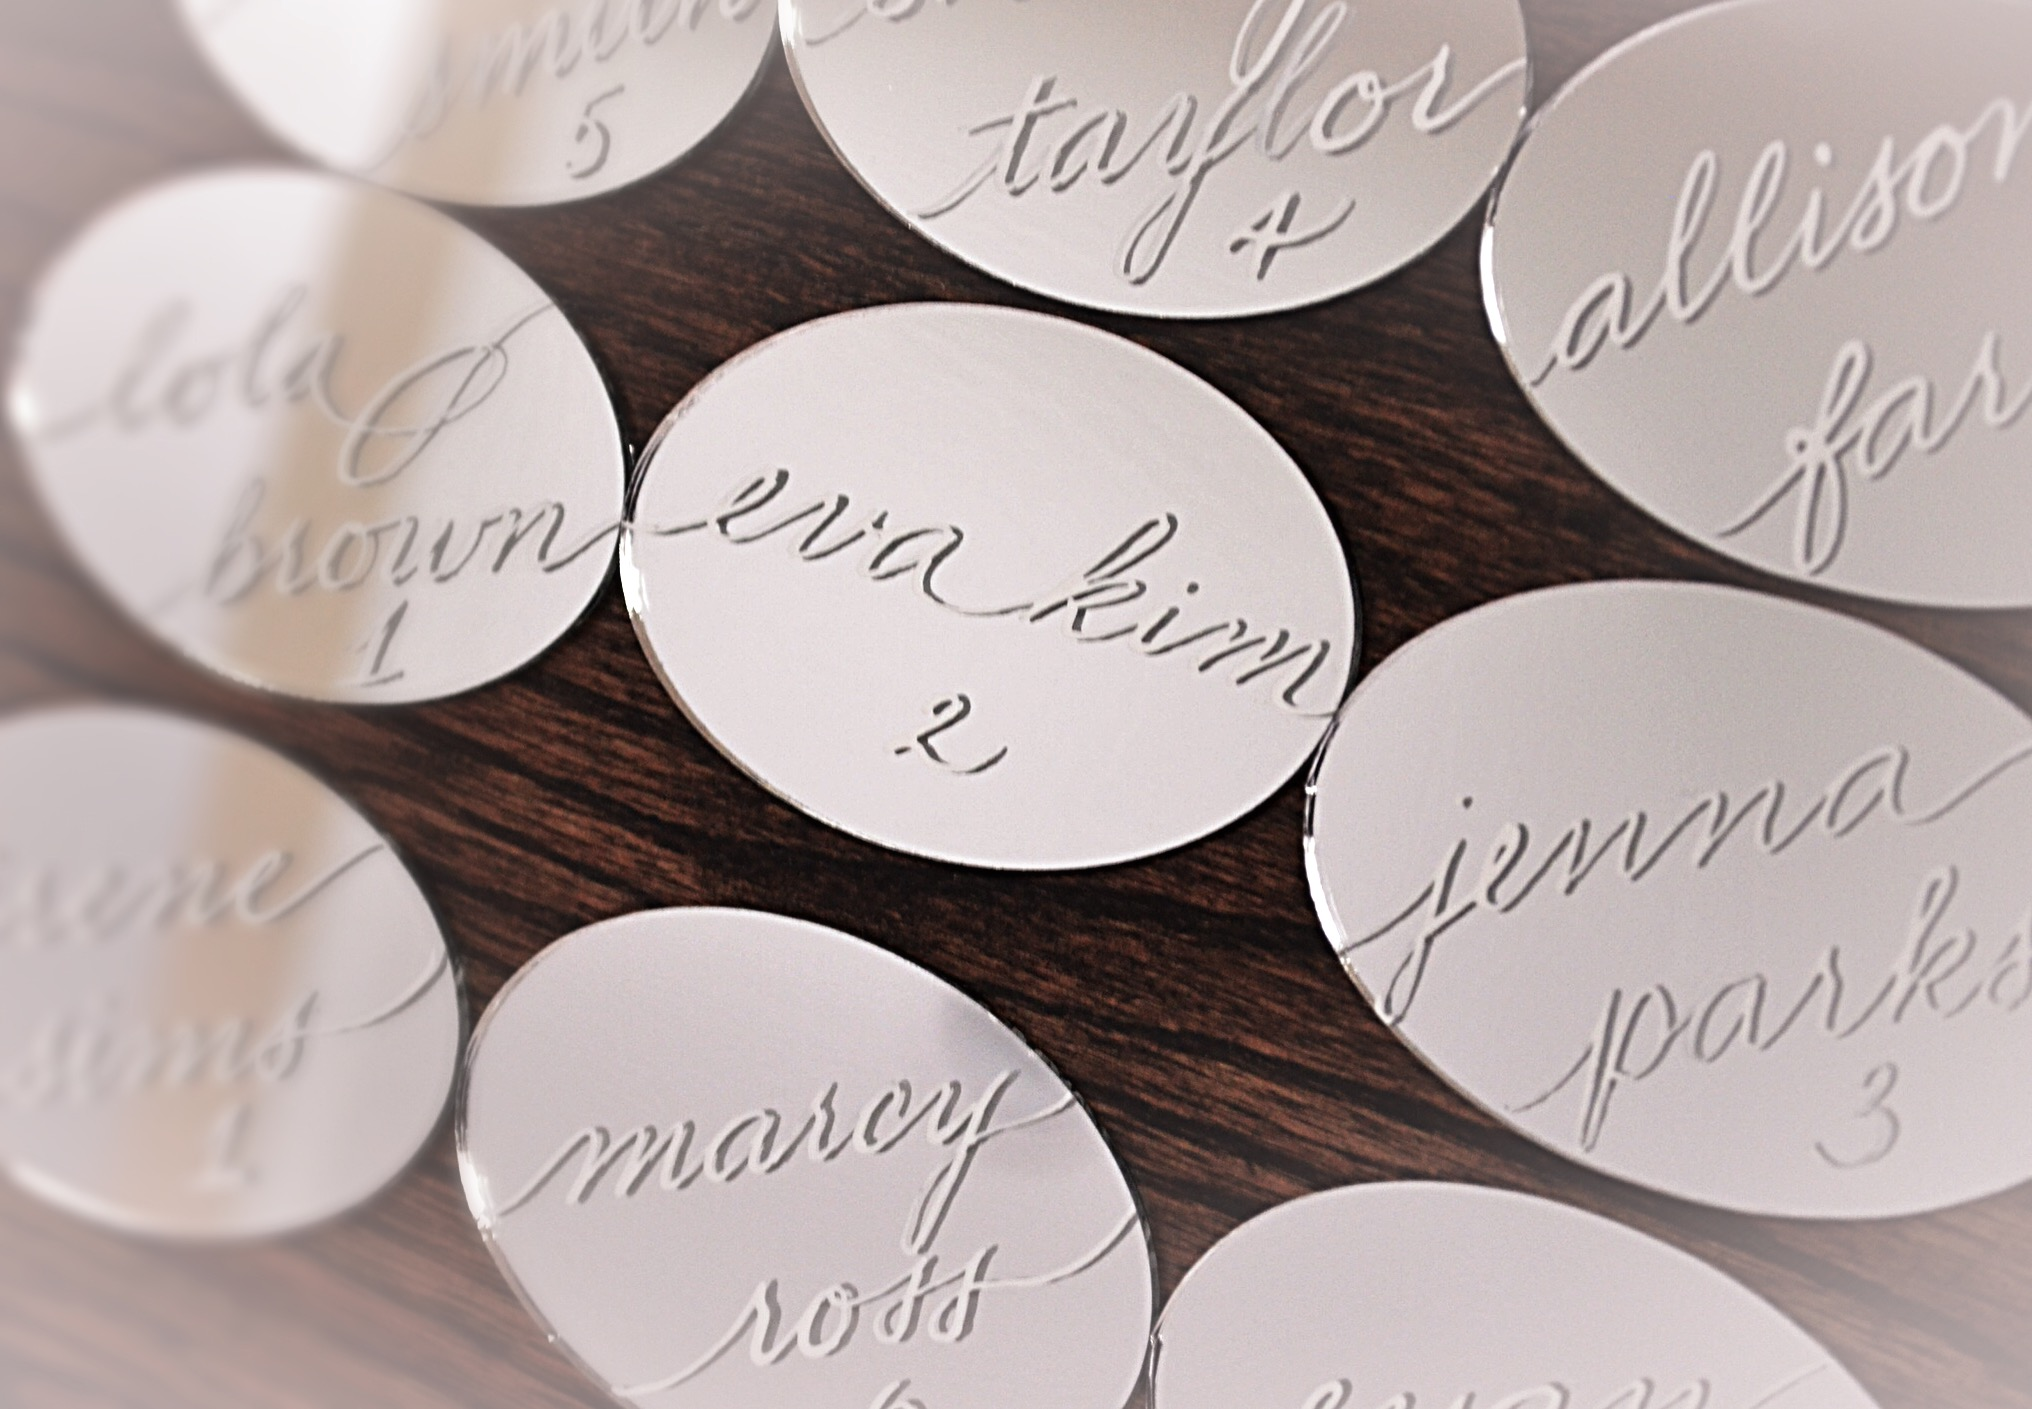 Houston Los Angeles New York Miami Mirror Calligraphy Place card Escort Card.JPG